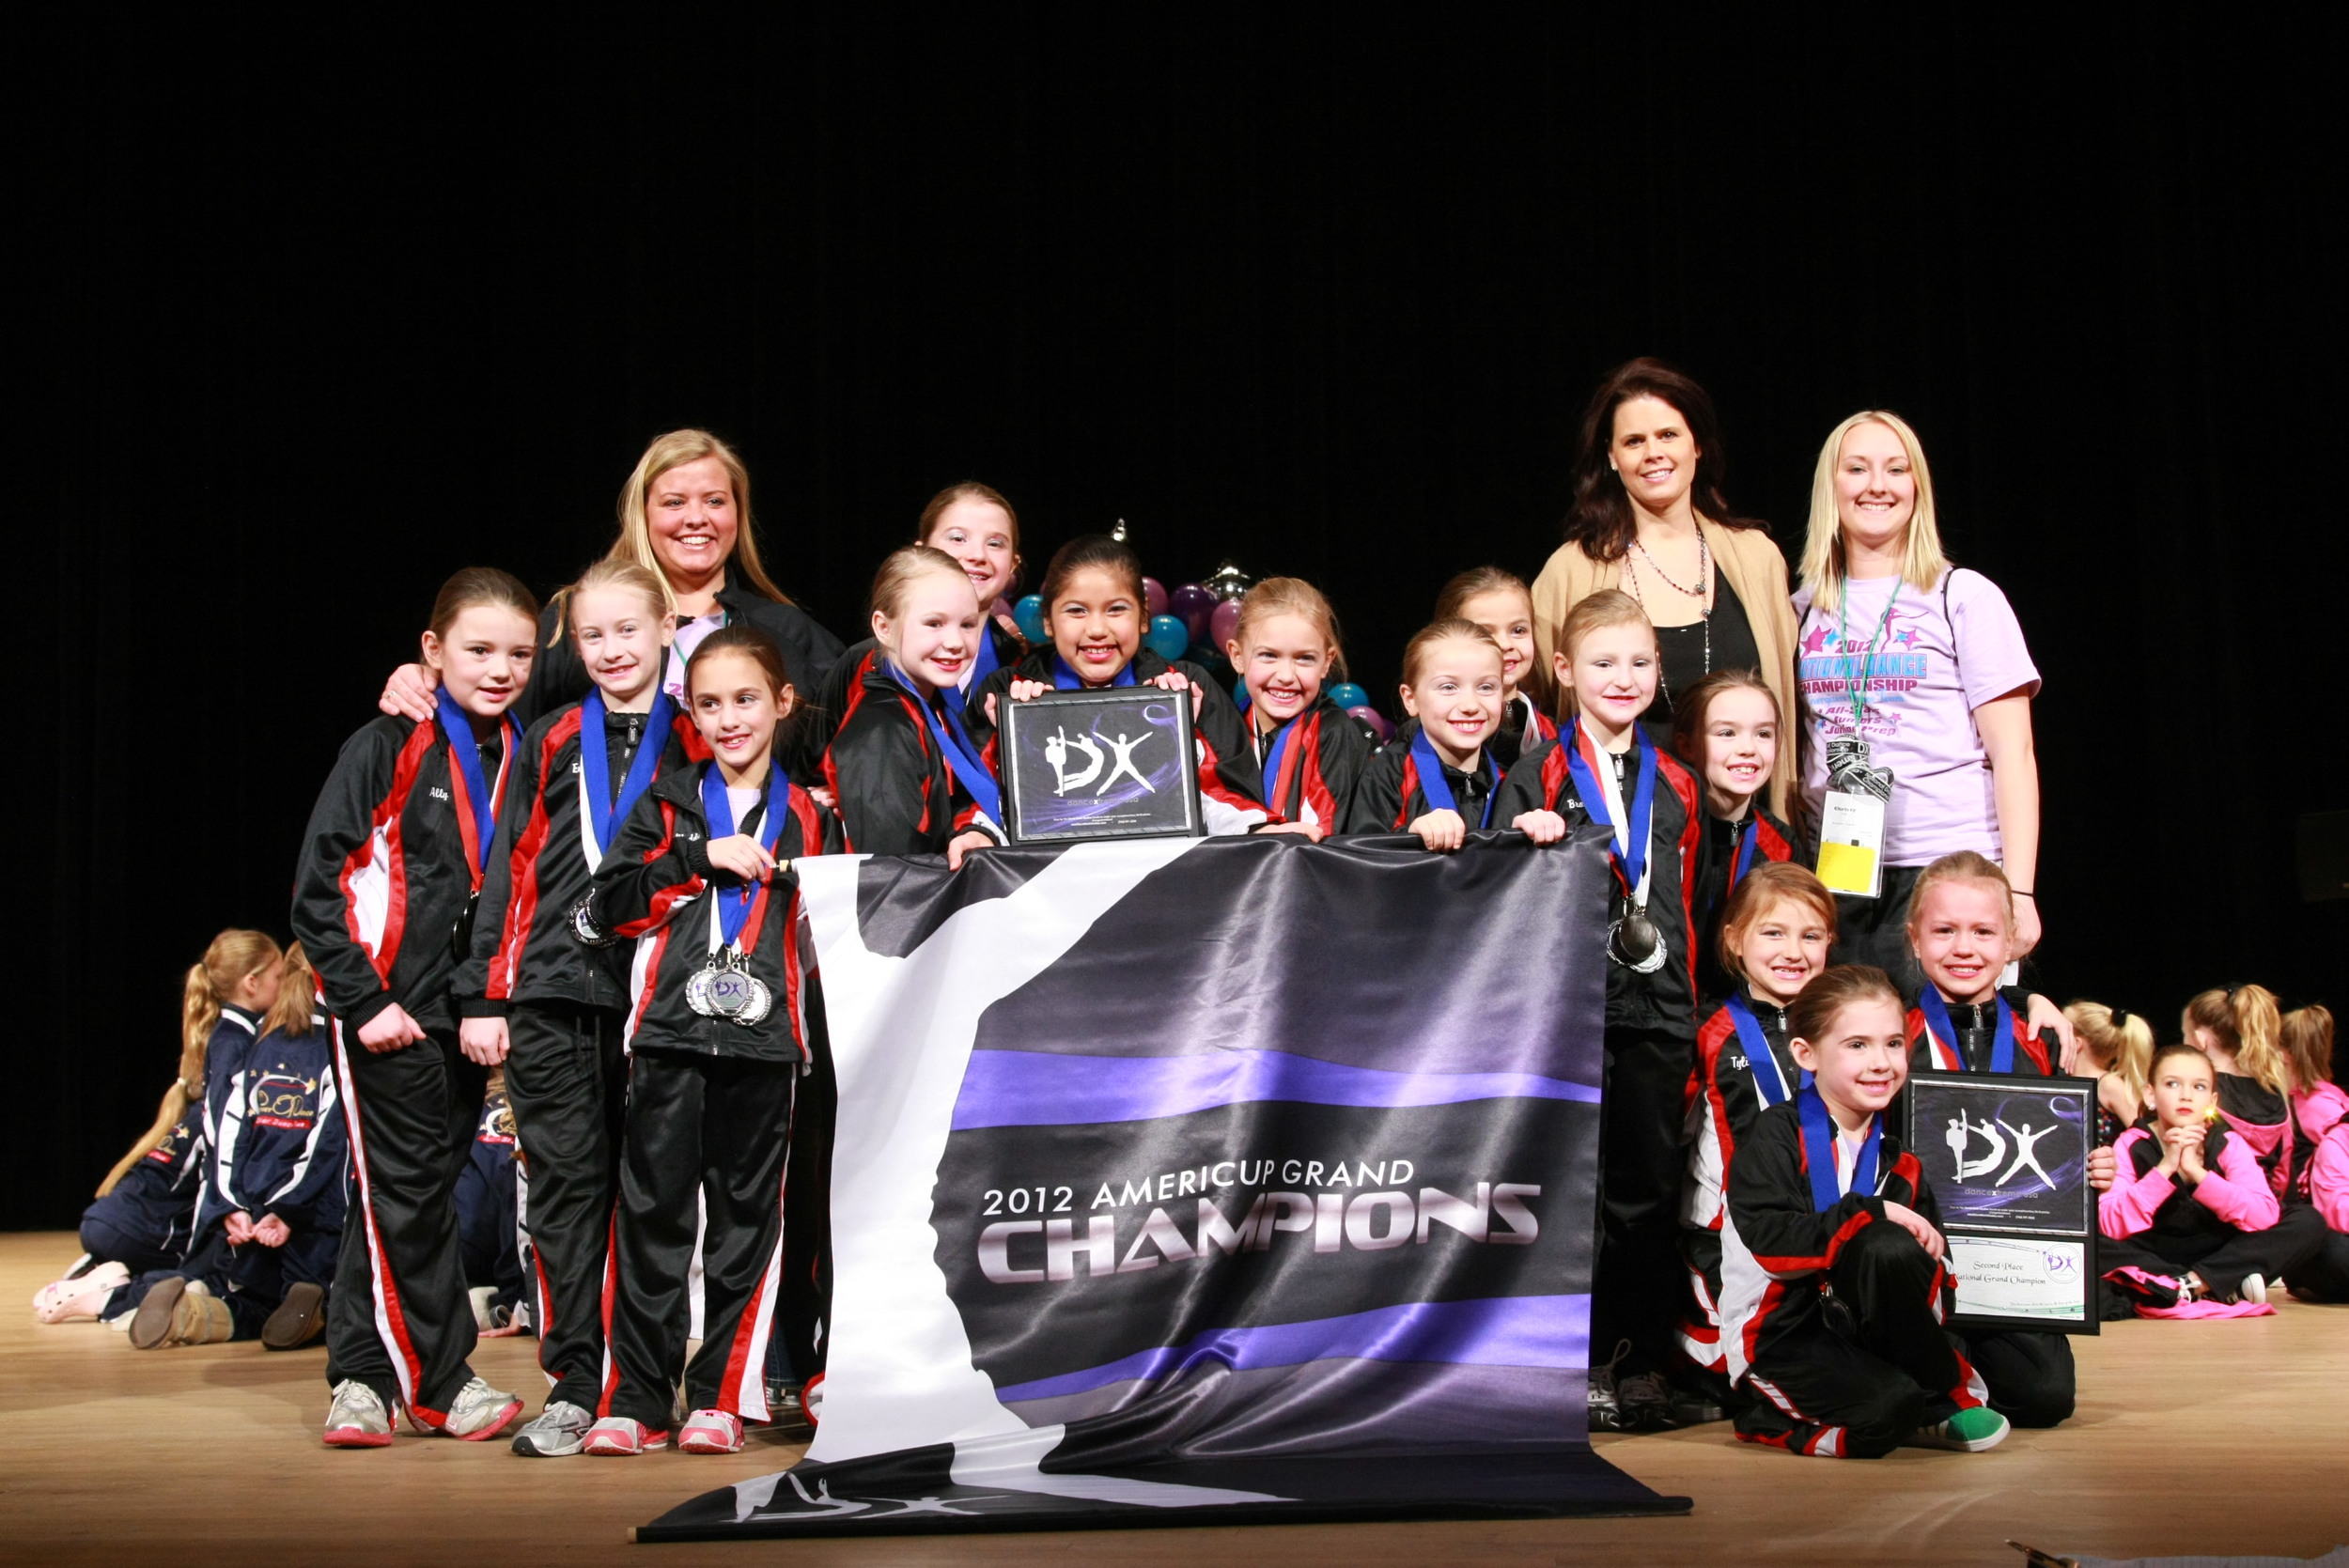 2012 AmeriCup Mini Grand Champions  Energizers Junior Prep, Wisconsin